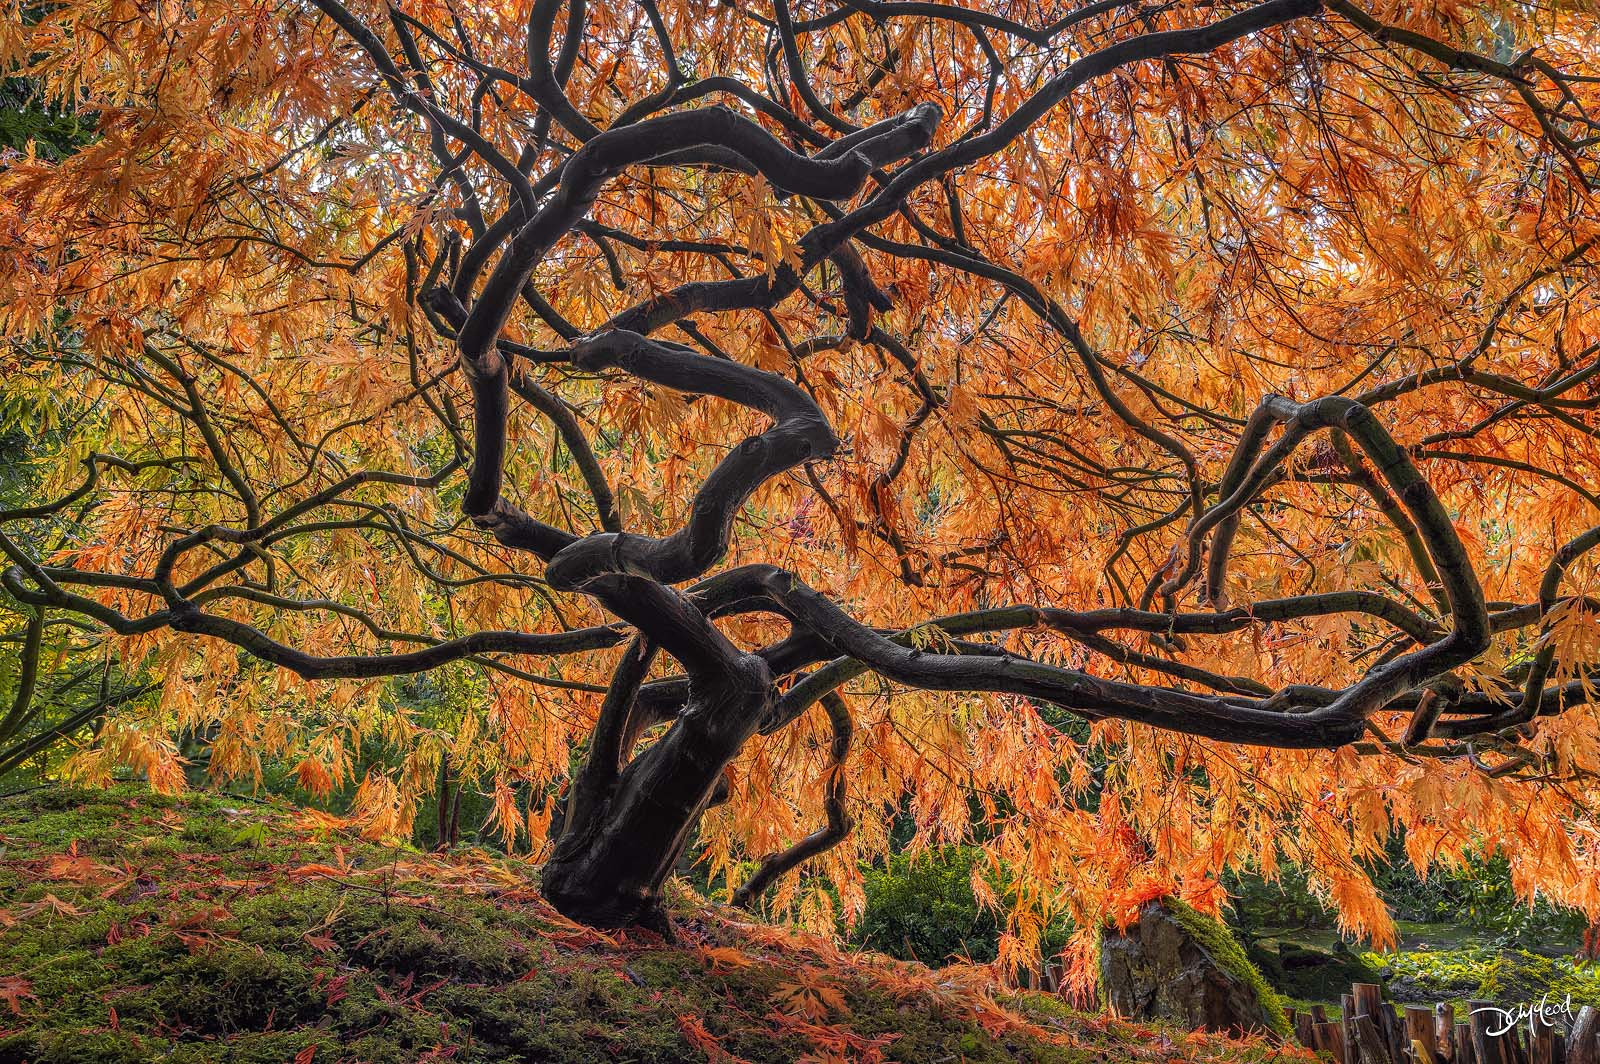 A small Japanese maple tree with orange leaves and mossy groundcover in Victoria, British Columbia, Canada.